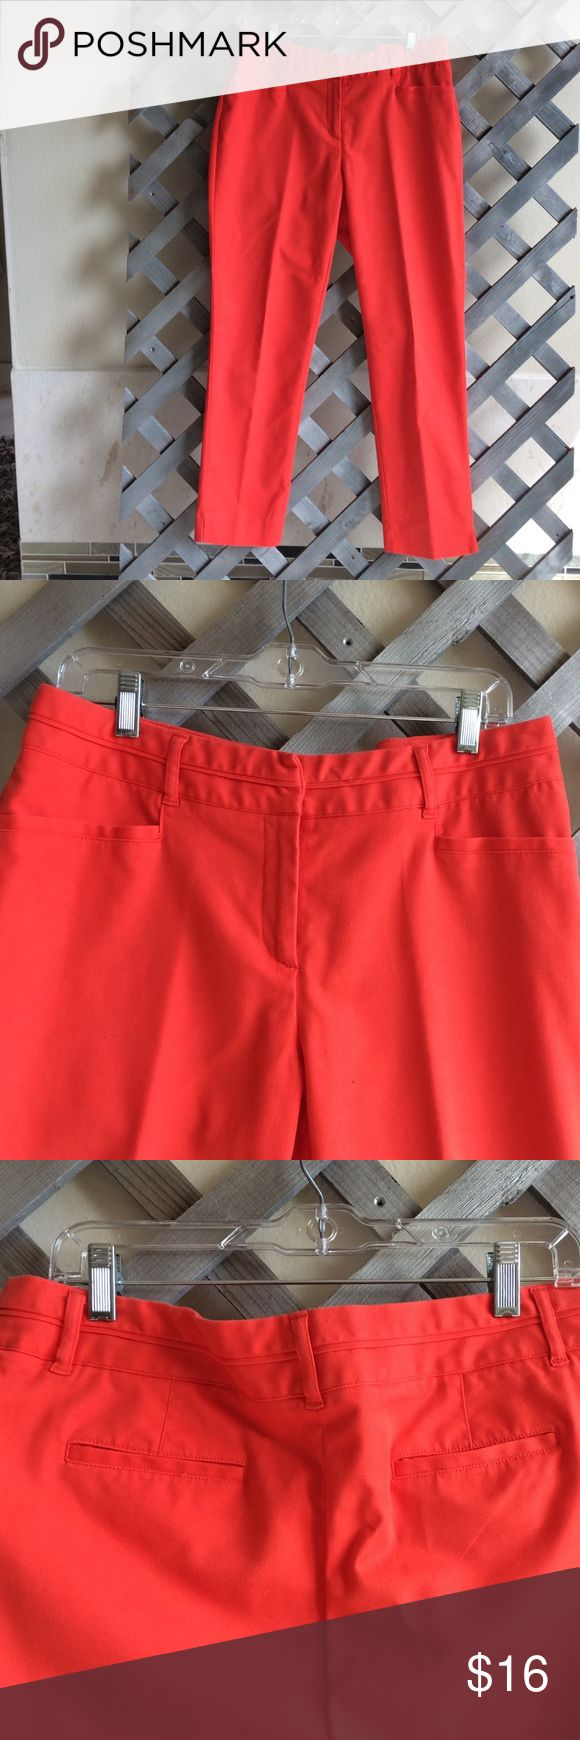 Orange pants -RAFAELLA Orange pants 👖! Great for fall! Cotton/ polyester/ spandex zip front/ belt loops / pockets front and back. Like new- excellent condition! Rafaella Pants Trousers